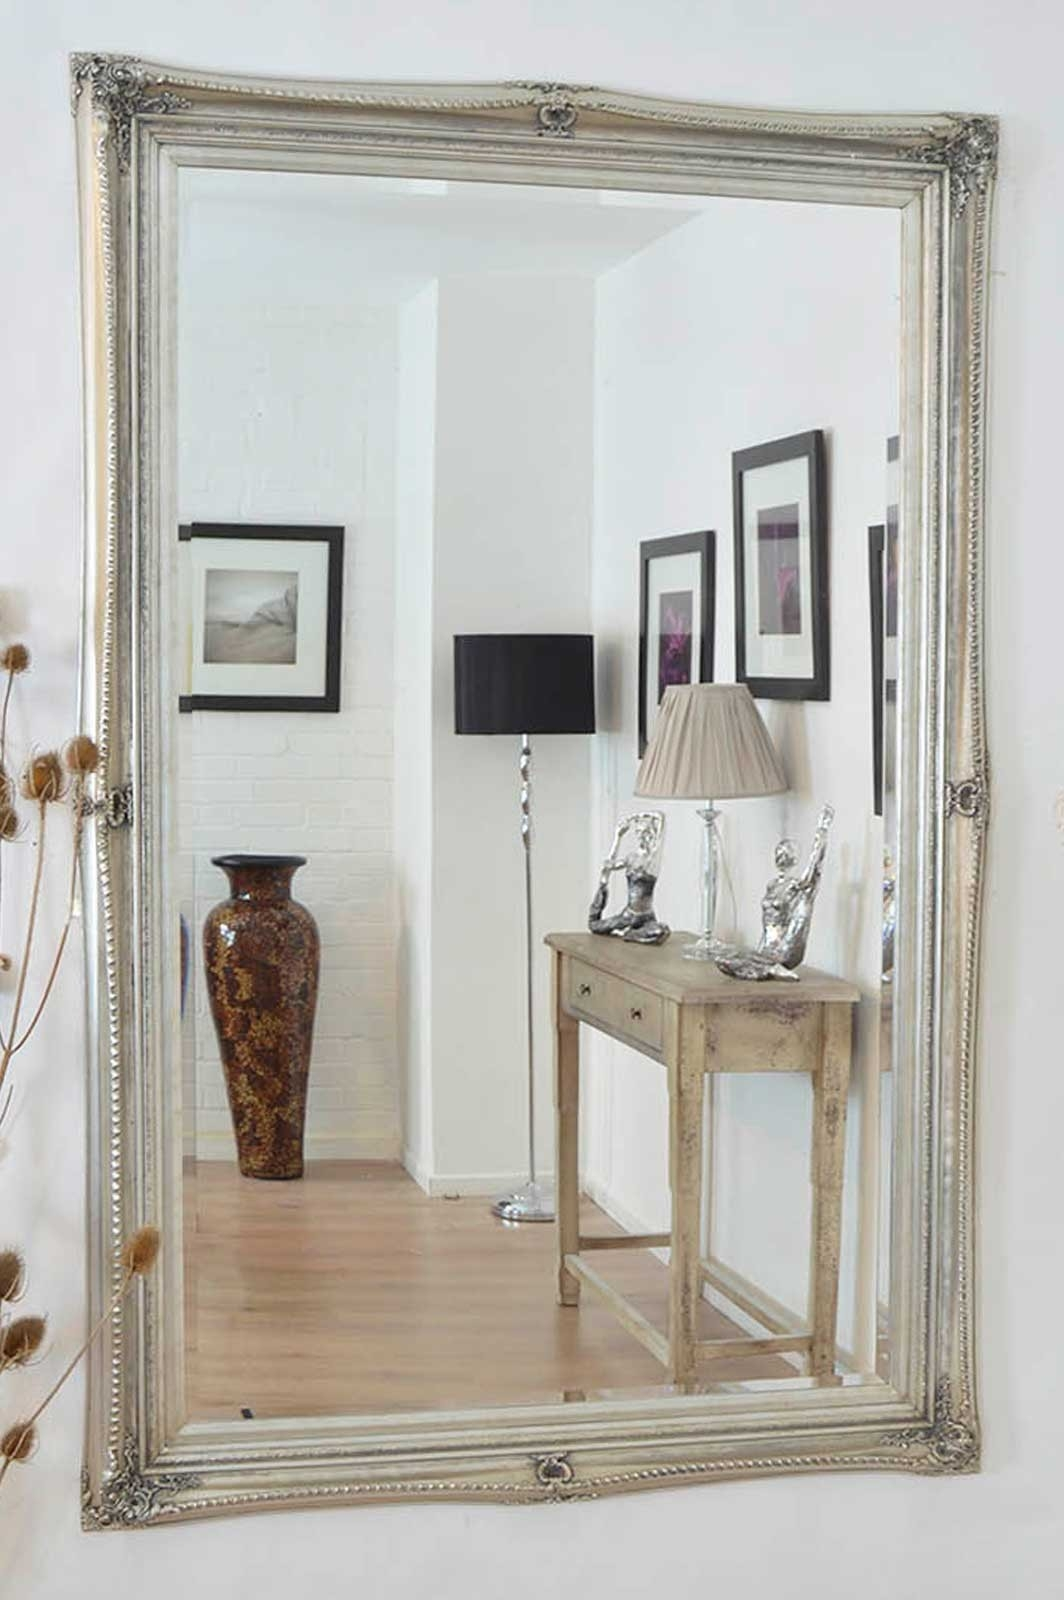 Large Silver Ornate Antique Shab Chic Wall Mirror 5ft9 X 3ft9 Throughout Mirrors Shabby Chic (Image 6 of 15)